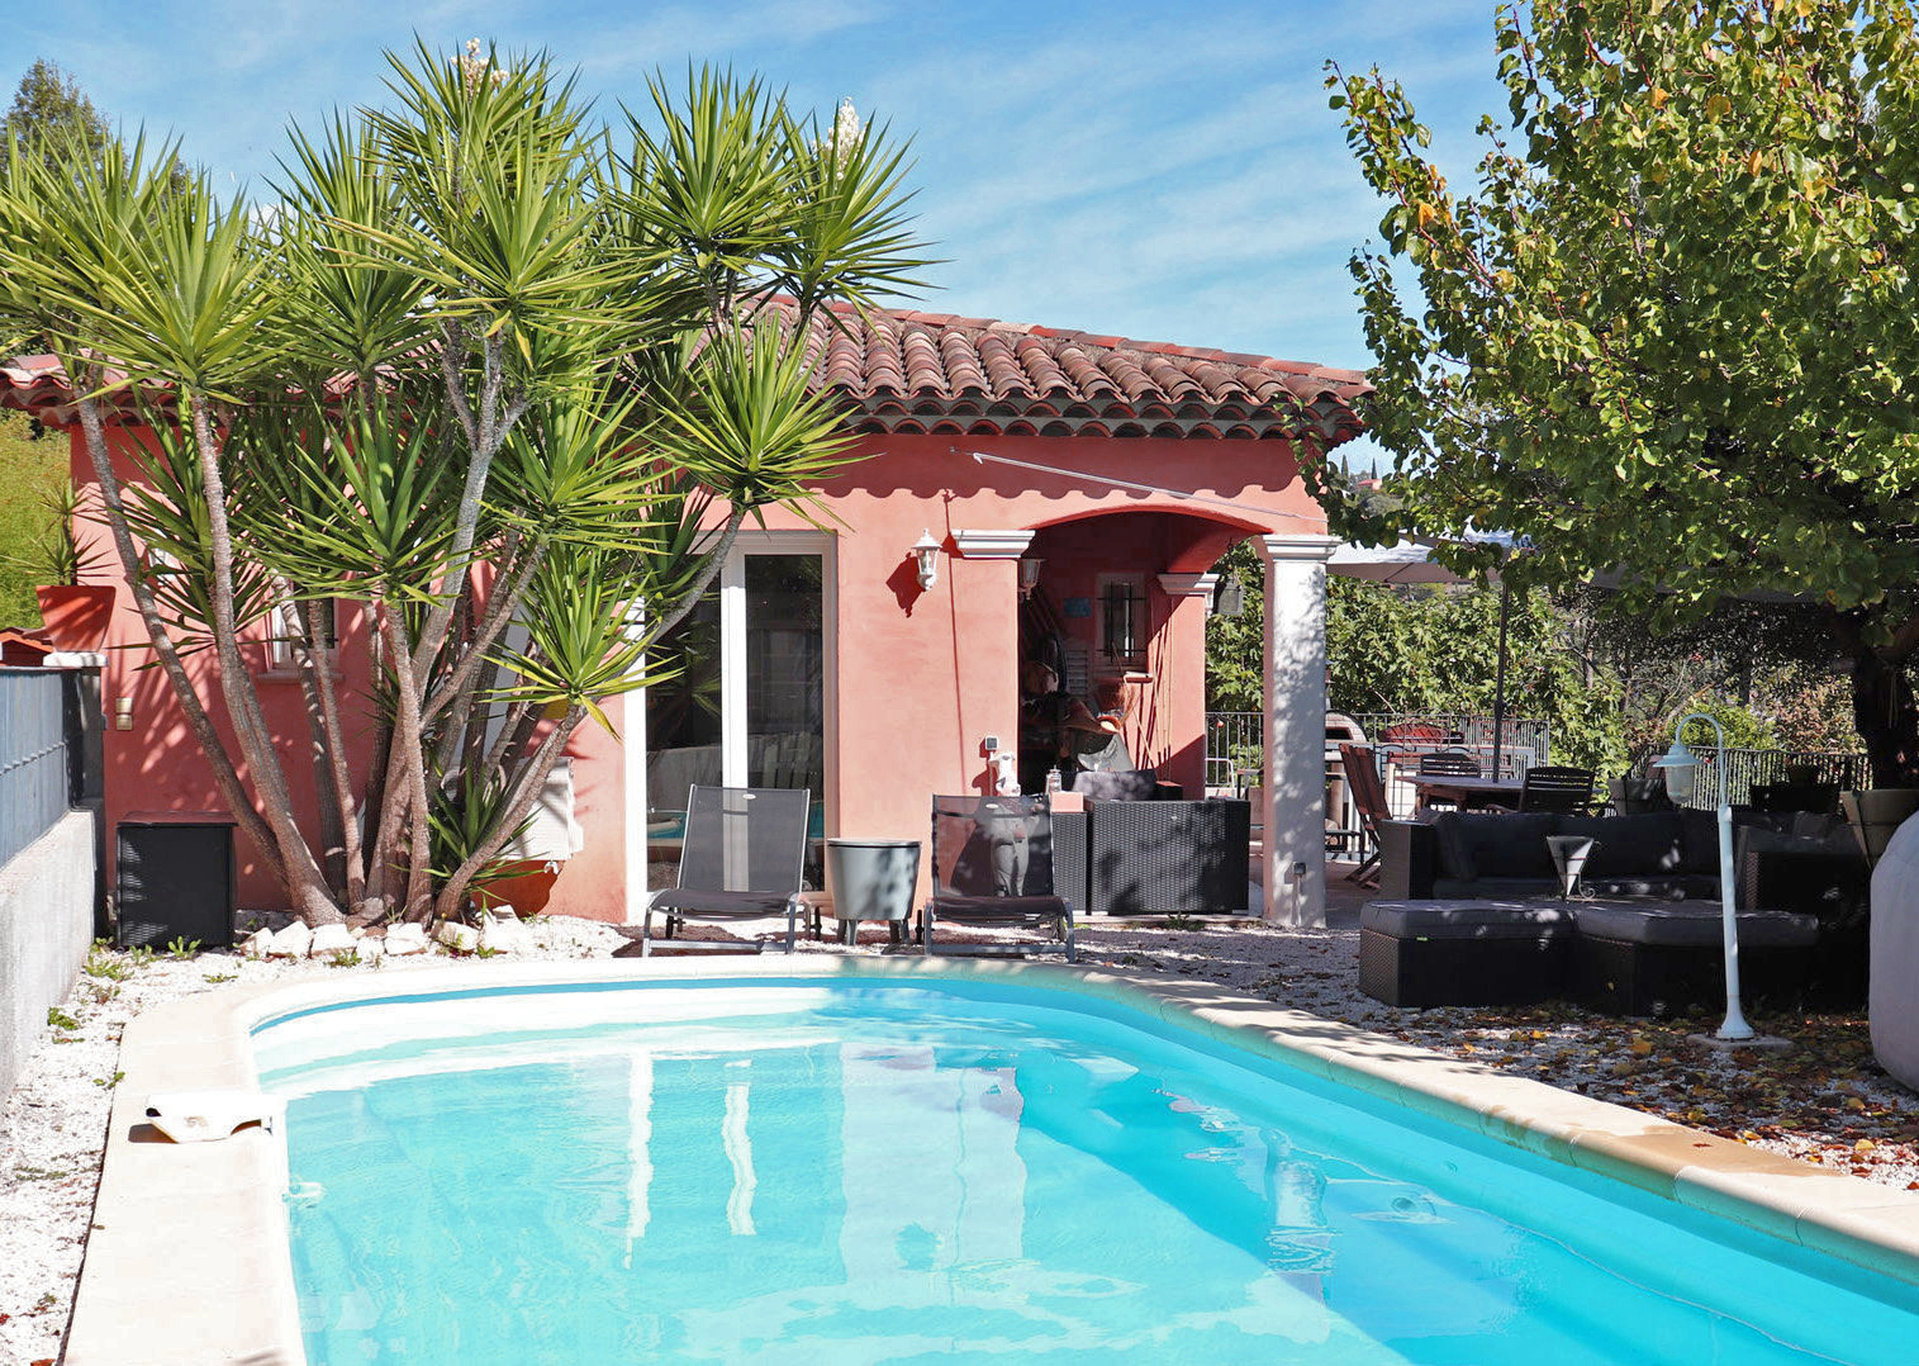 AURIBEAU SUR SIAGNE - Single storey villa in a quiet environment